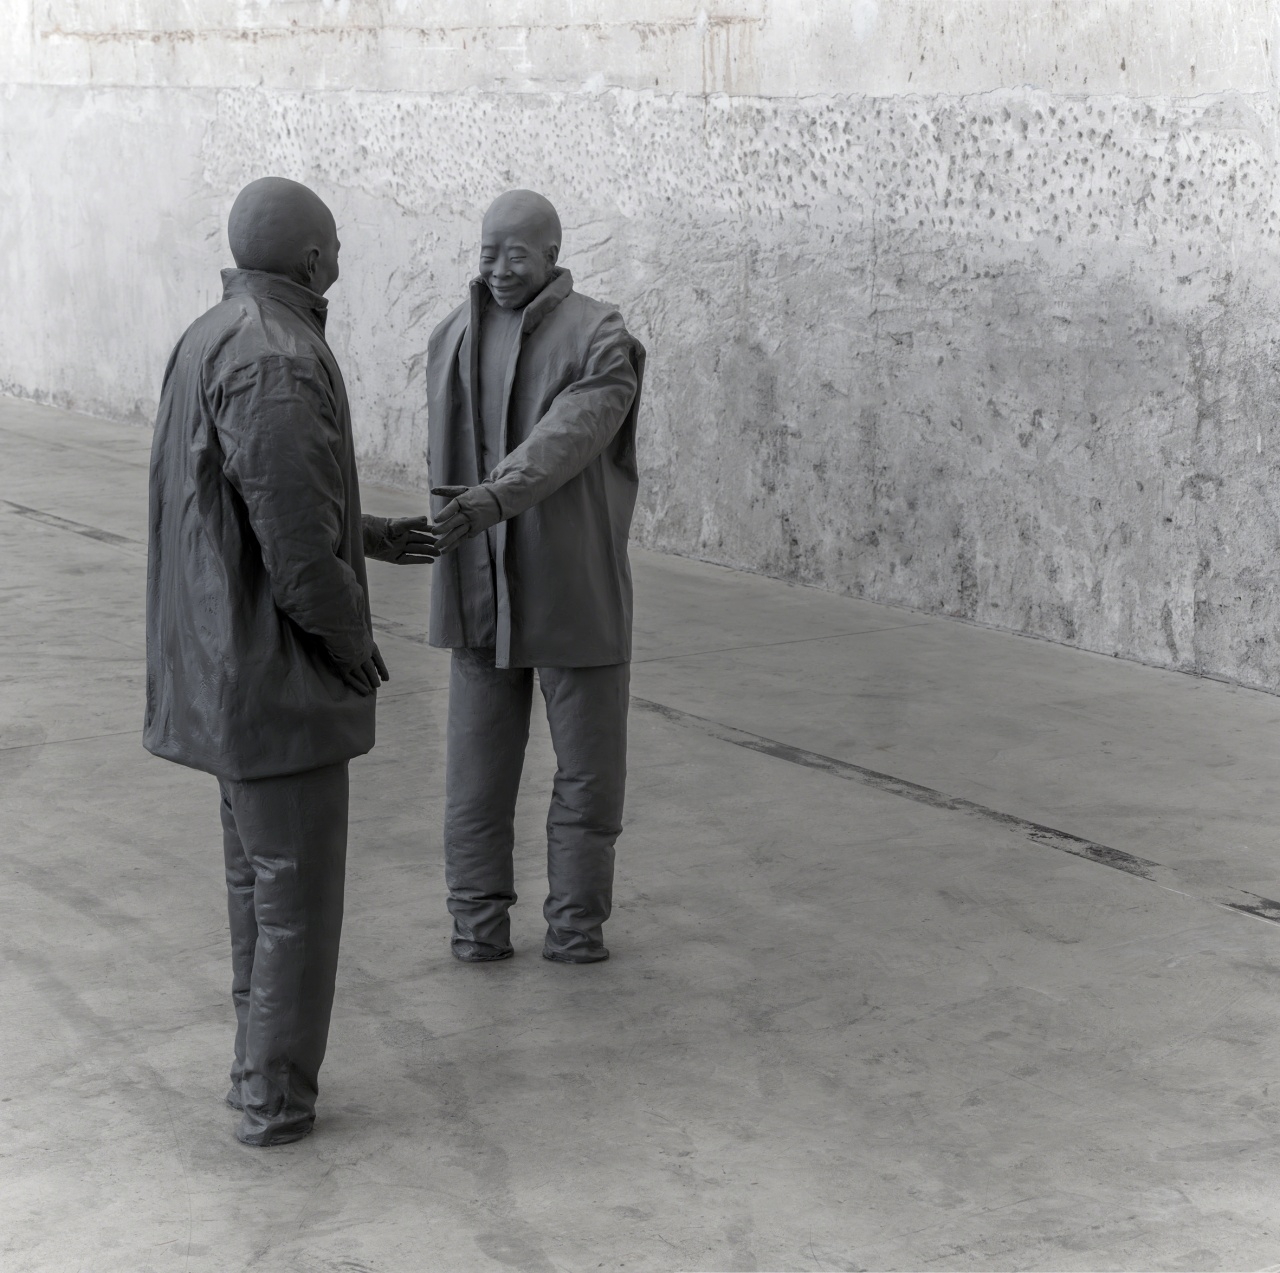 Installation view HangarBicocca, Milan, 2015. Photo Attilio Maranzano